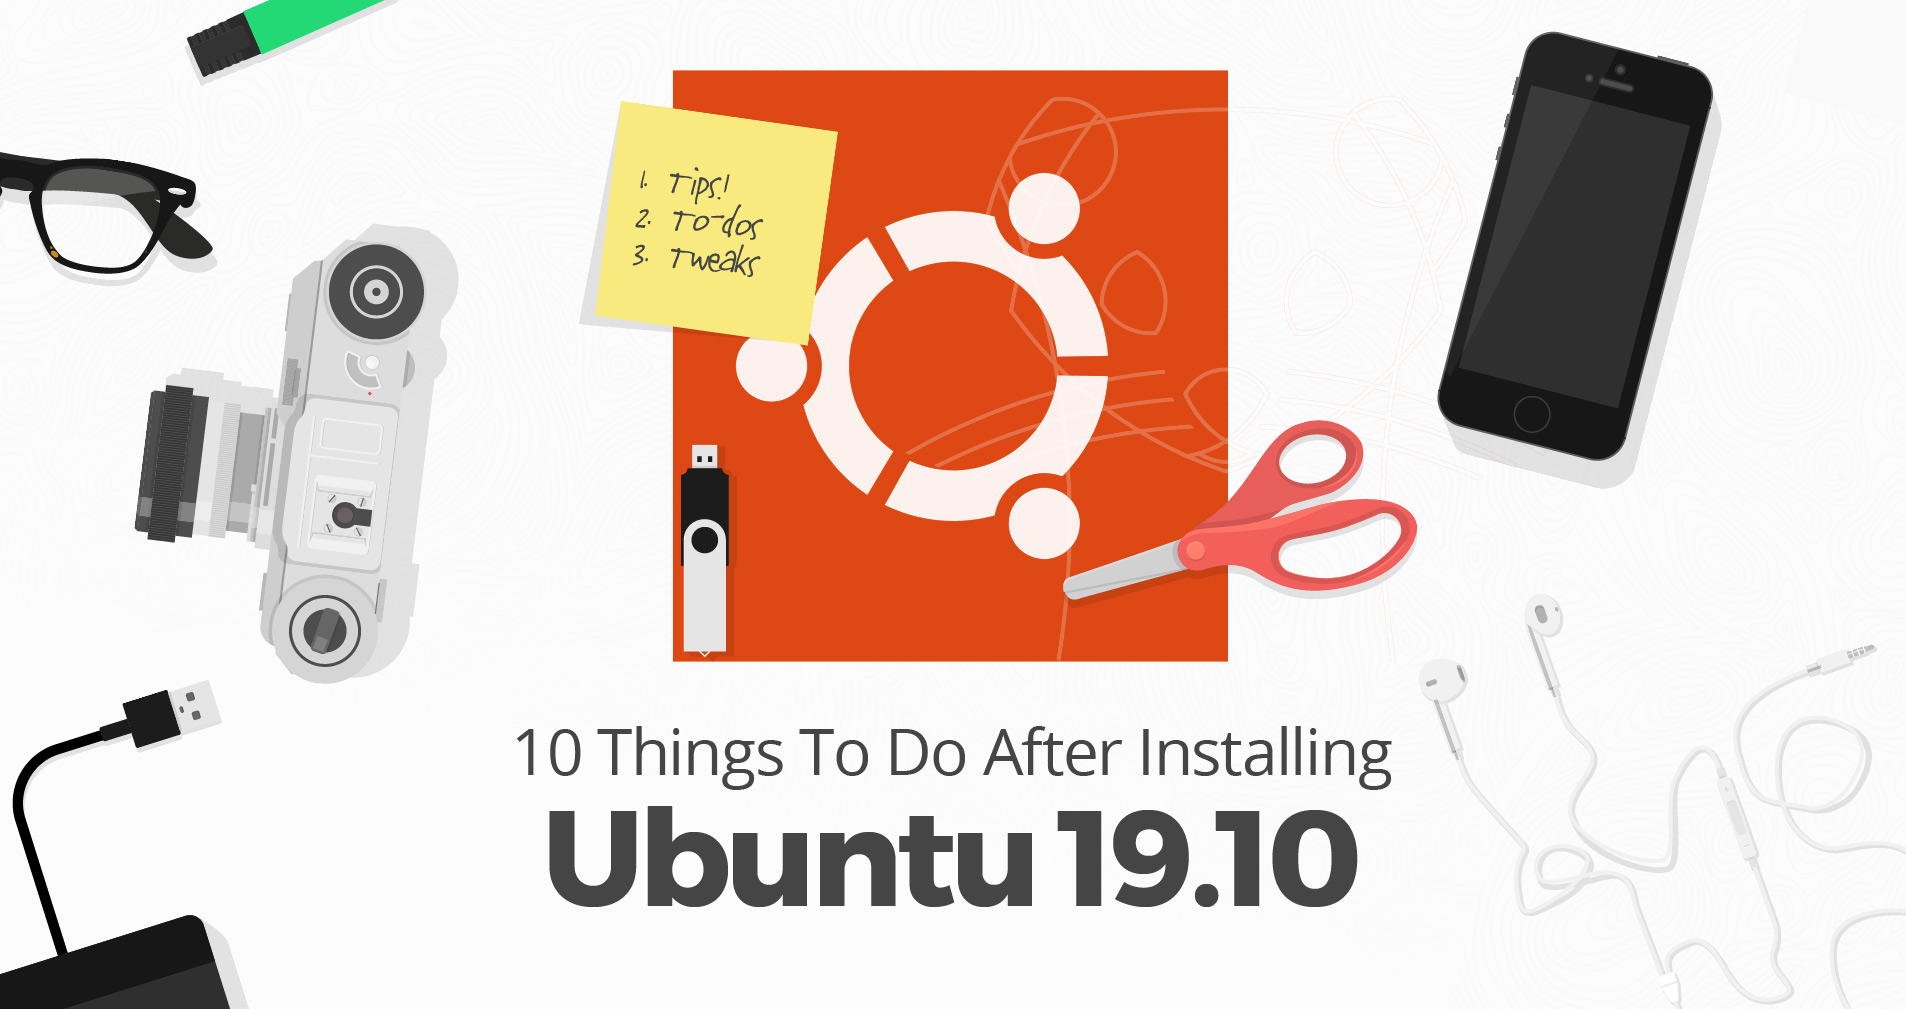 10 Things To Do After Installing Ubuntu 19.10